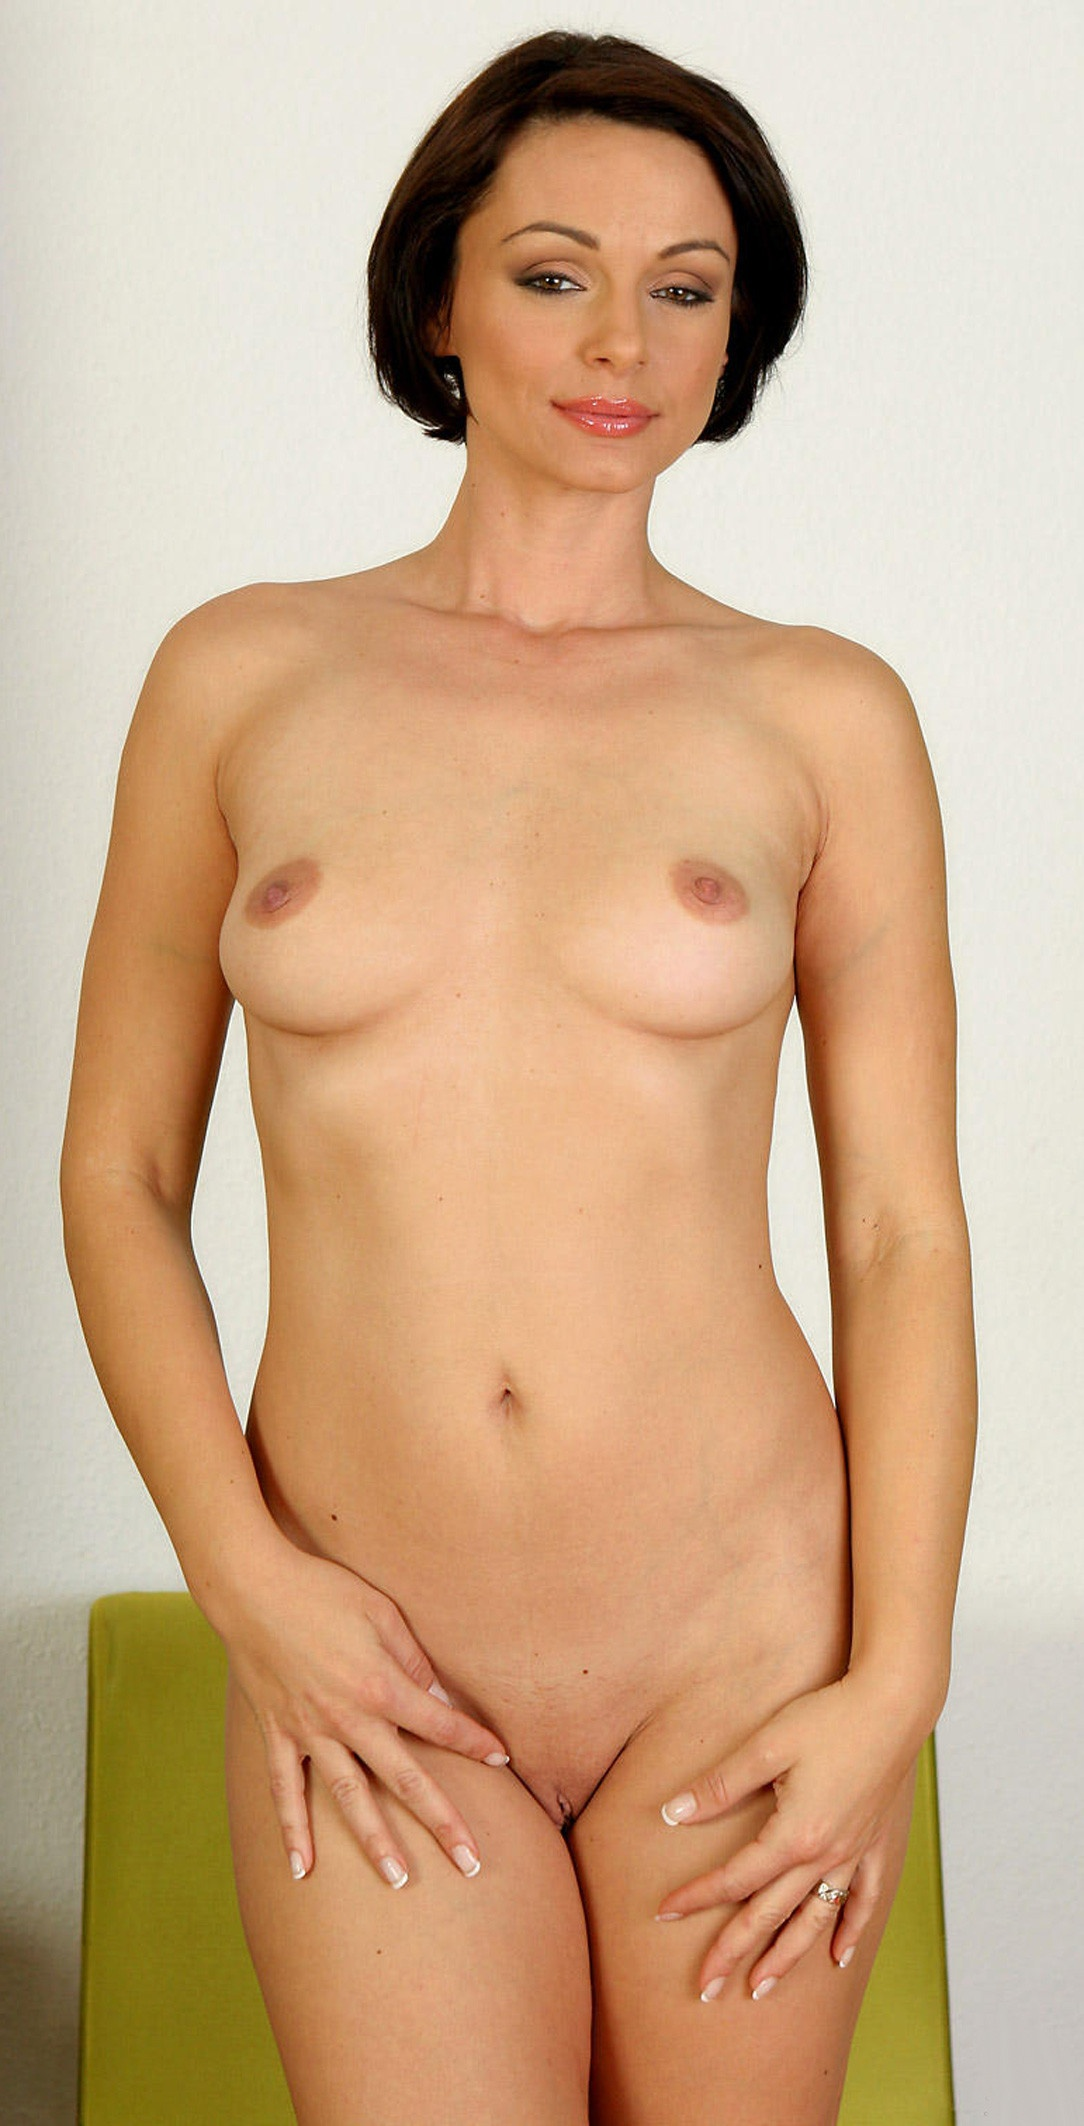 women mature photo softcore Nude